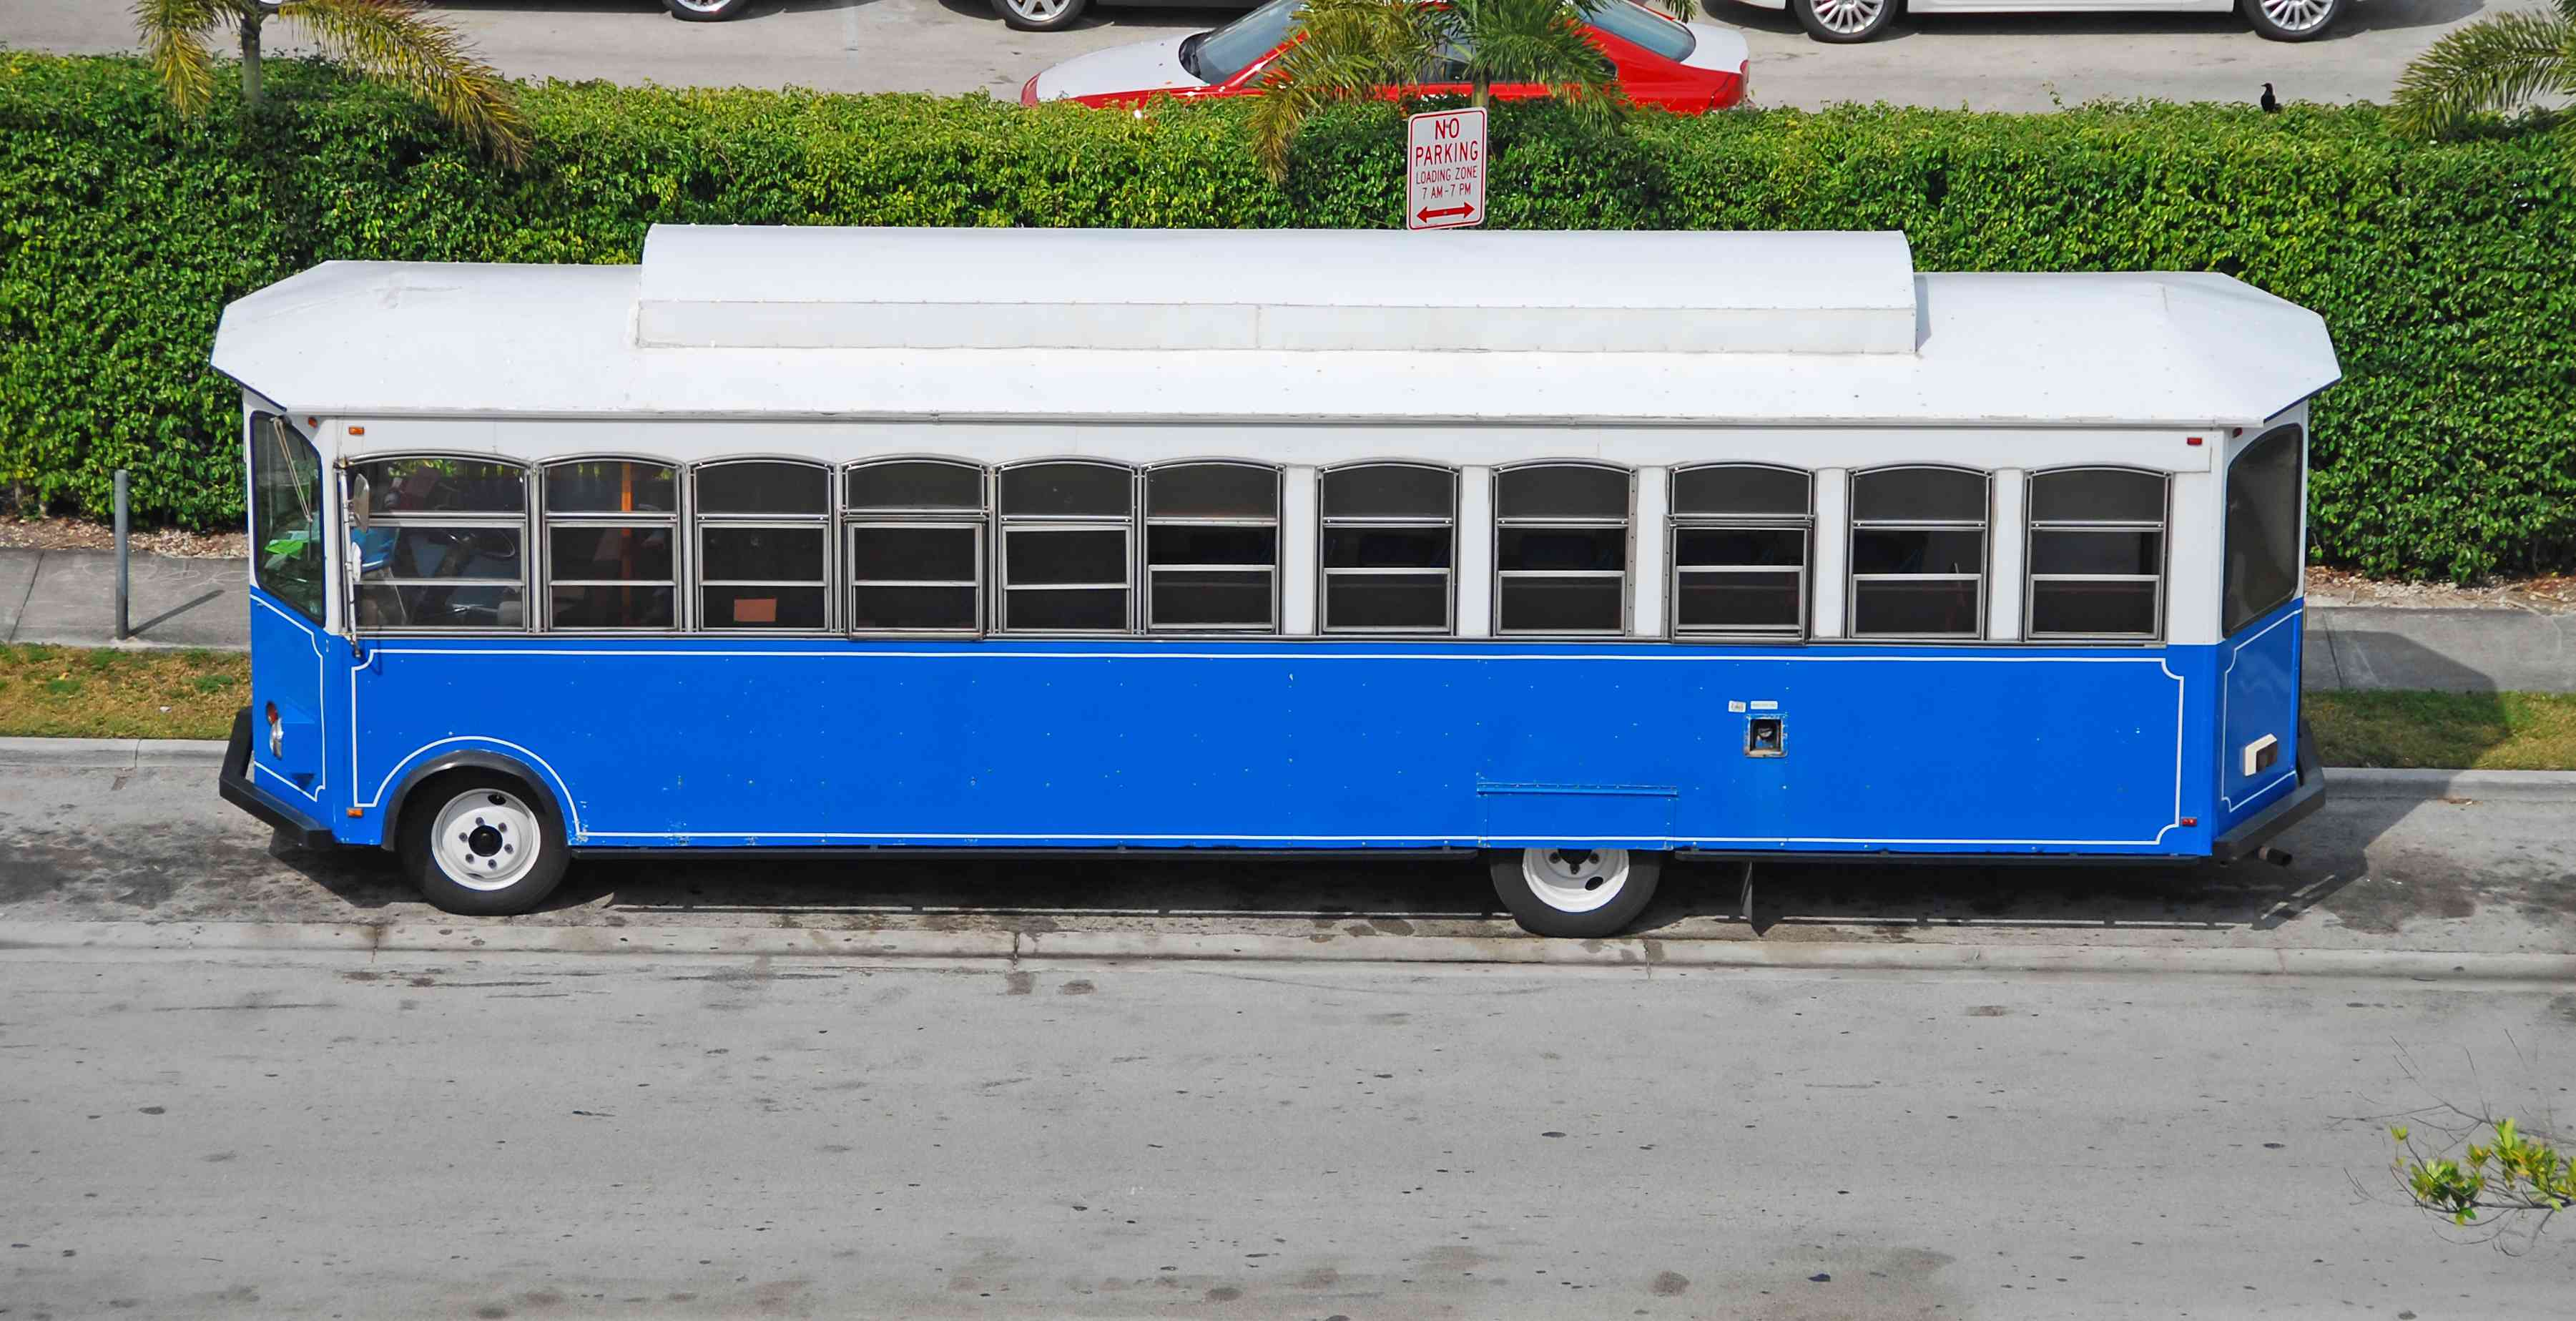 Miami Trolley parked on street